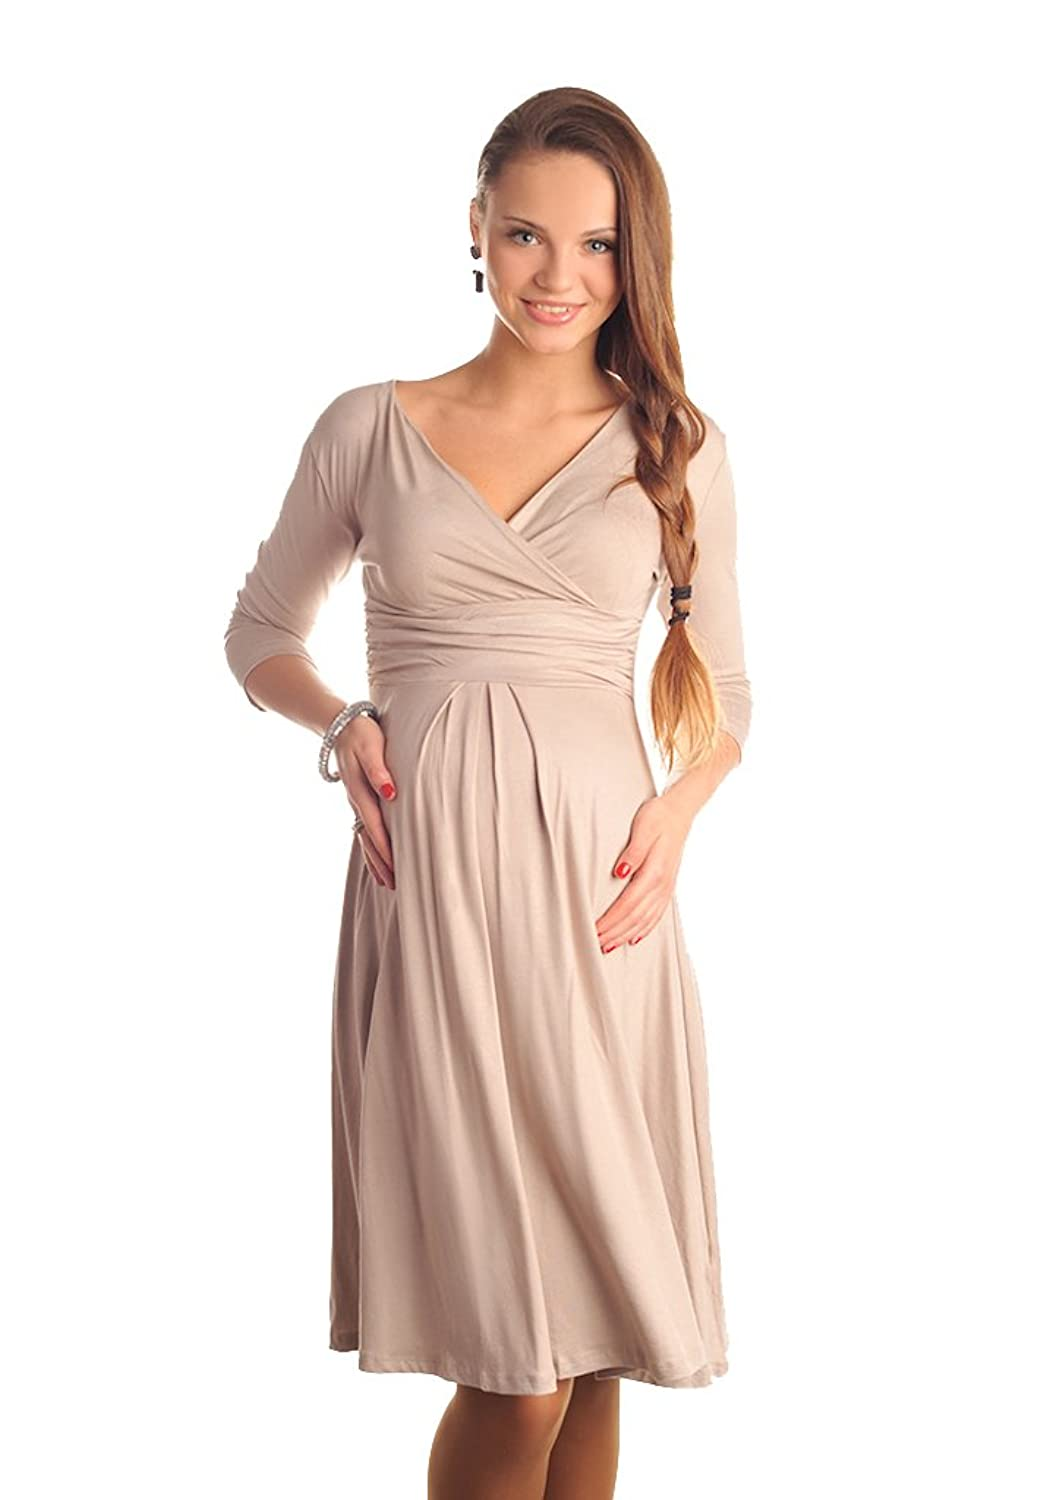 Maternity casual dresses amazon gorgeous maternity and pregnancy dress ombrellifo Choice Image